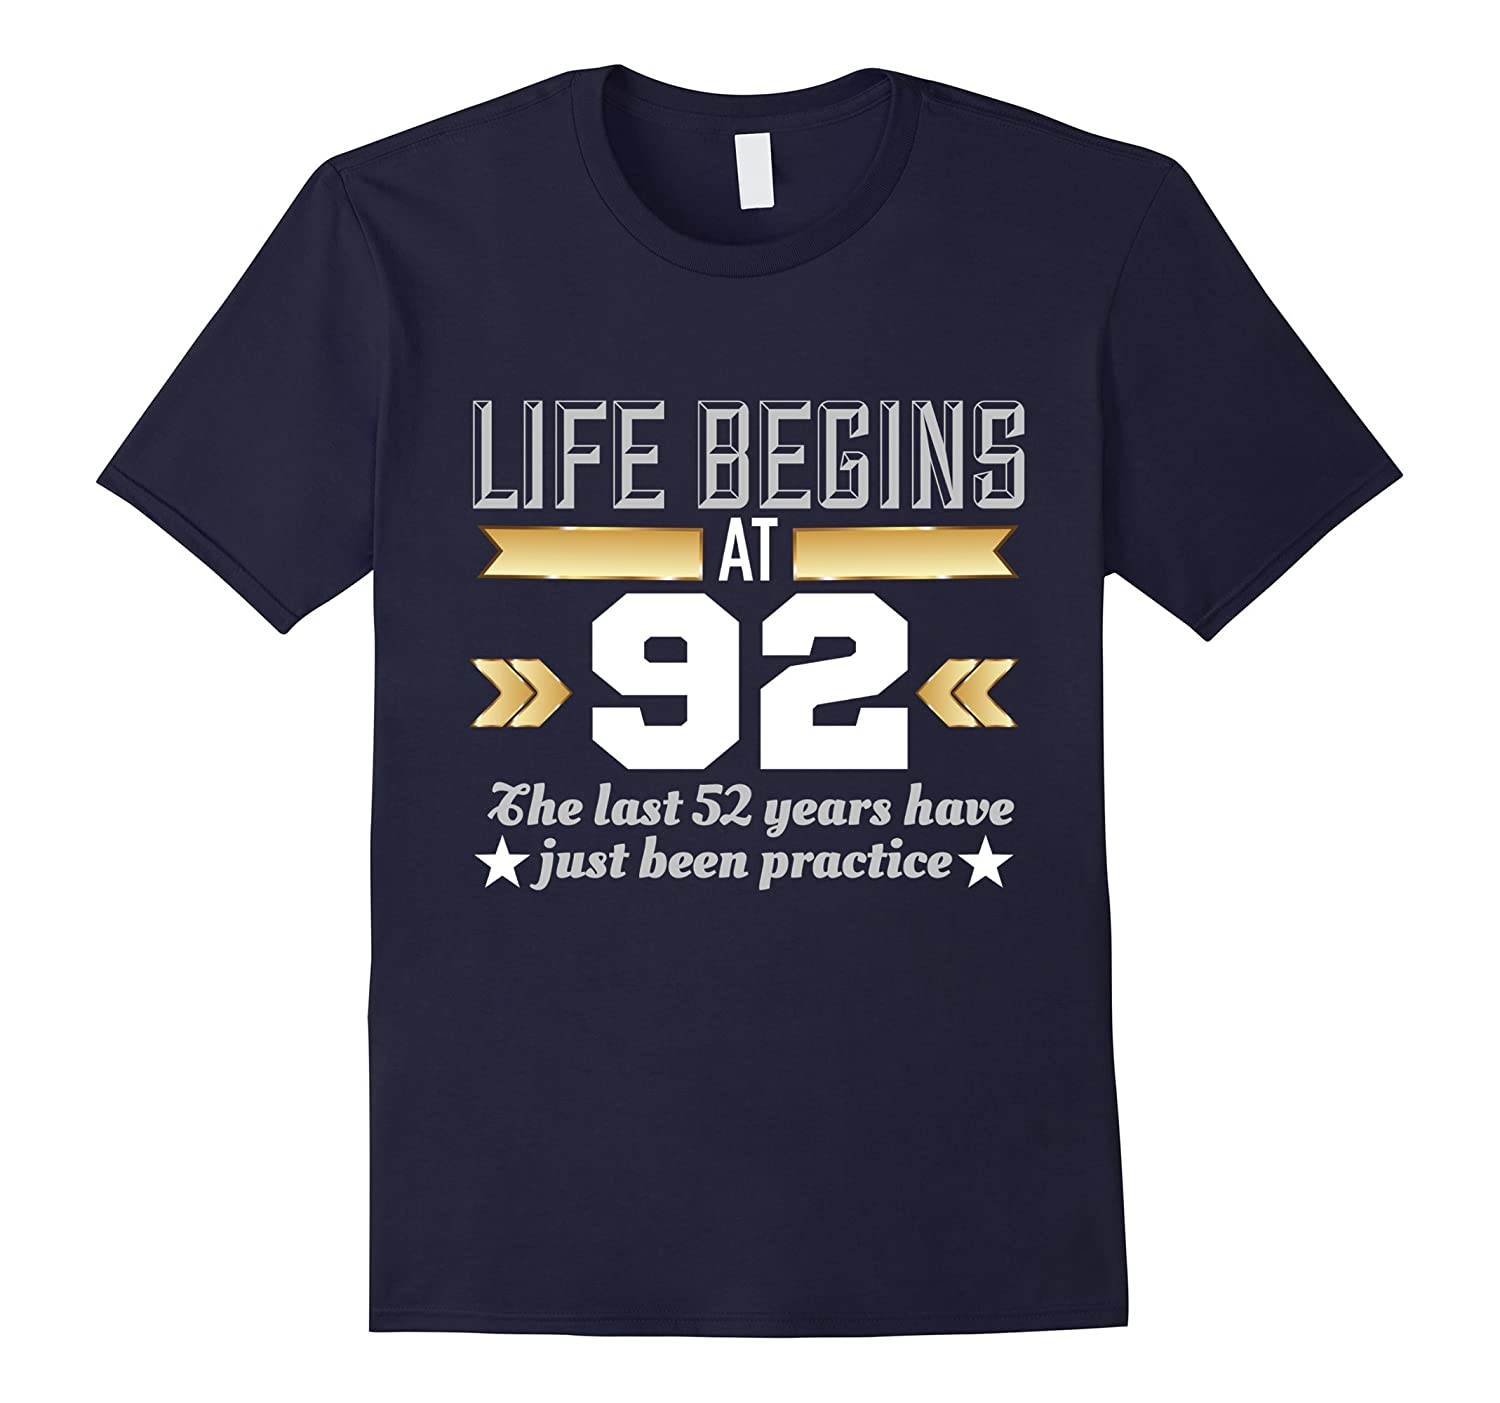 Life Begins At 92 - Funny 92nd Birthday T-Shirt-PL